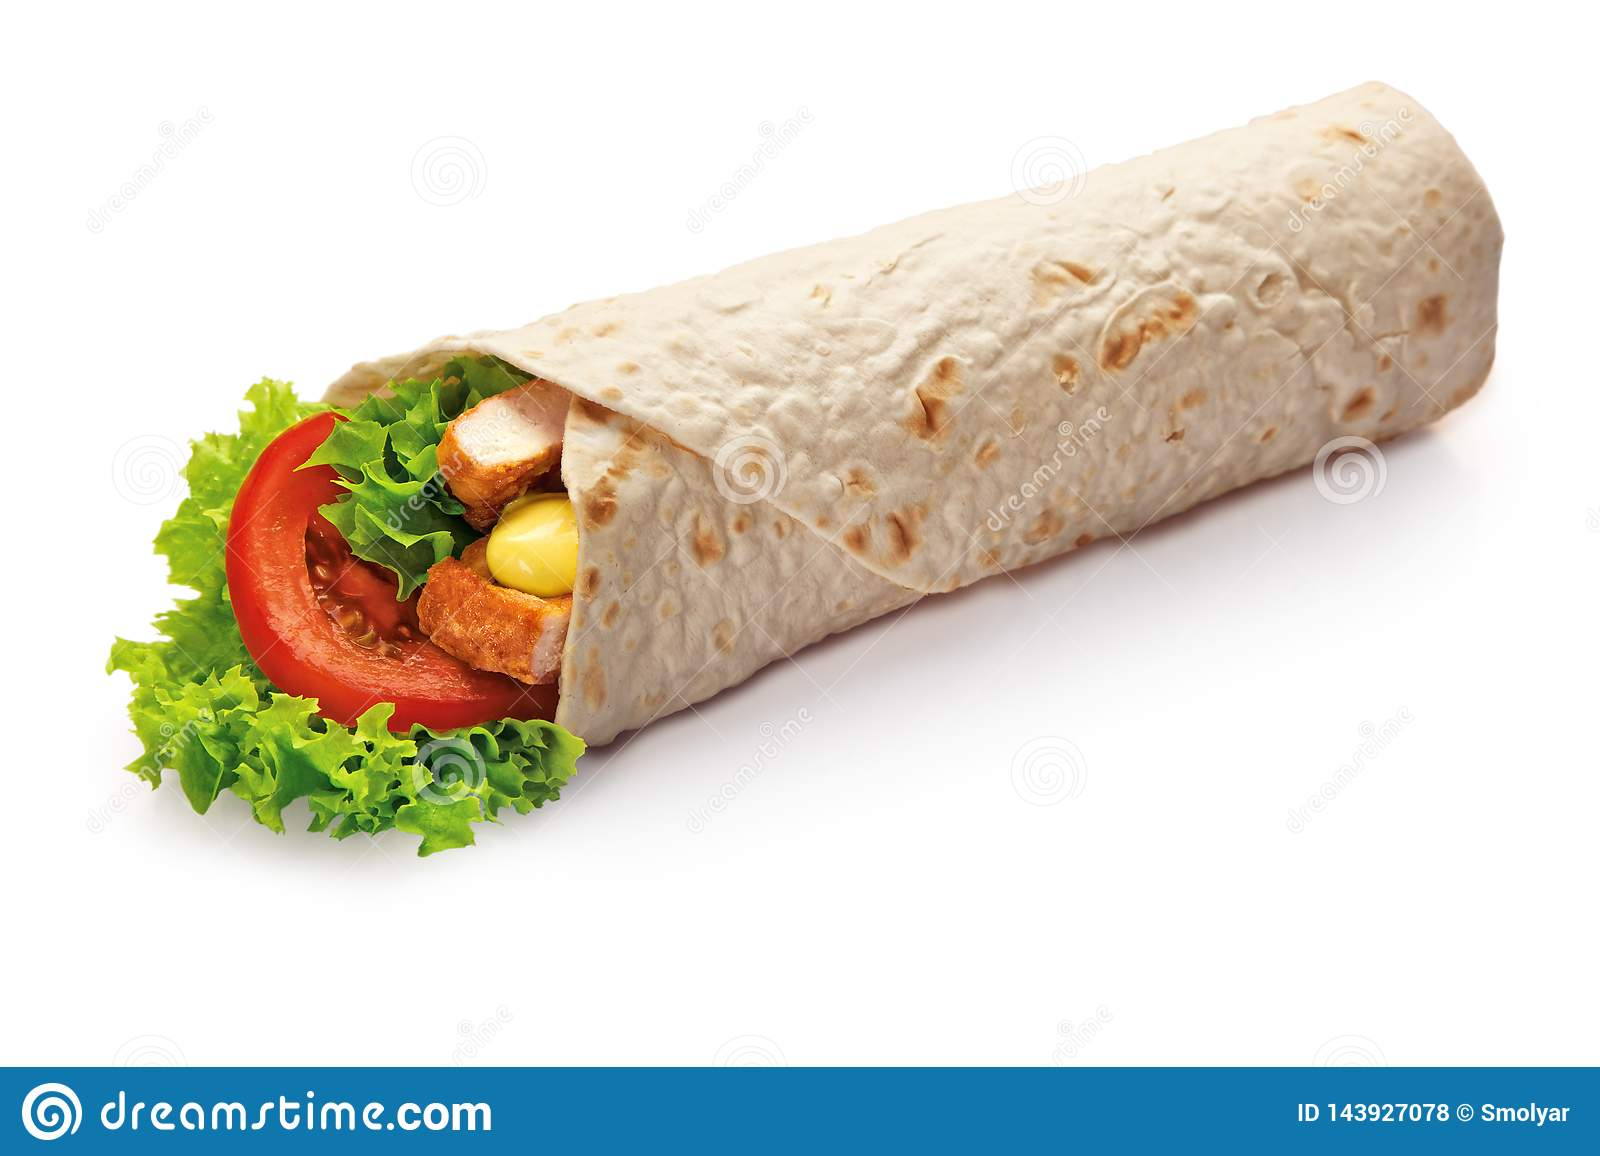 Chicken Kebab Wrap With Green Salad And Vegetables Close Up Isolated On White Background Stock Photo Image Of Sauce Cheese 143927078